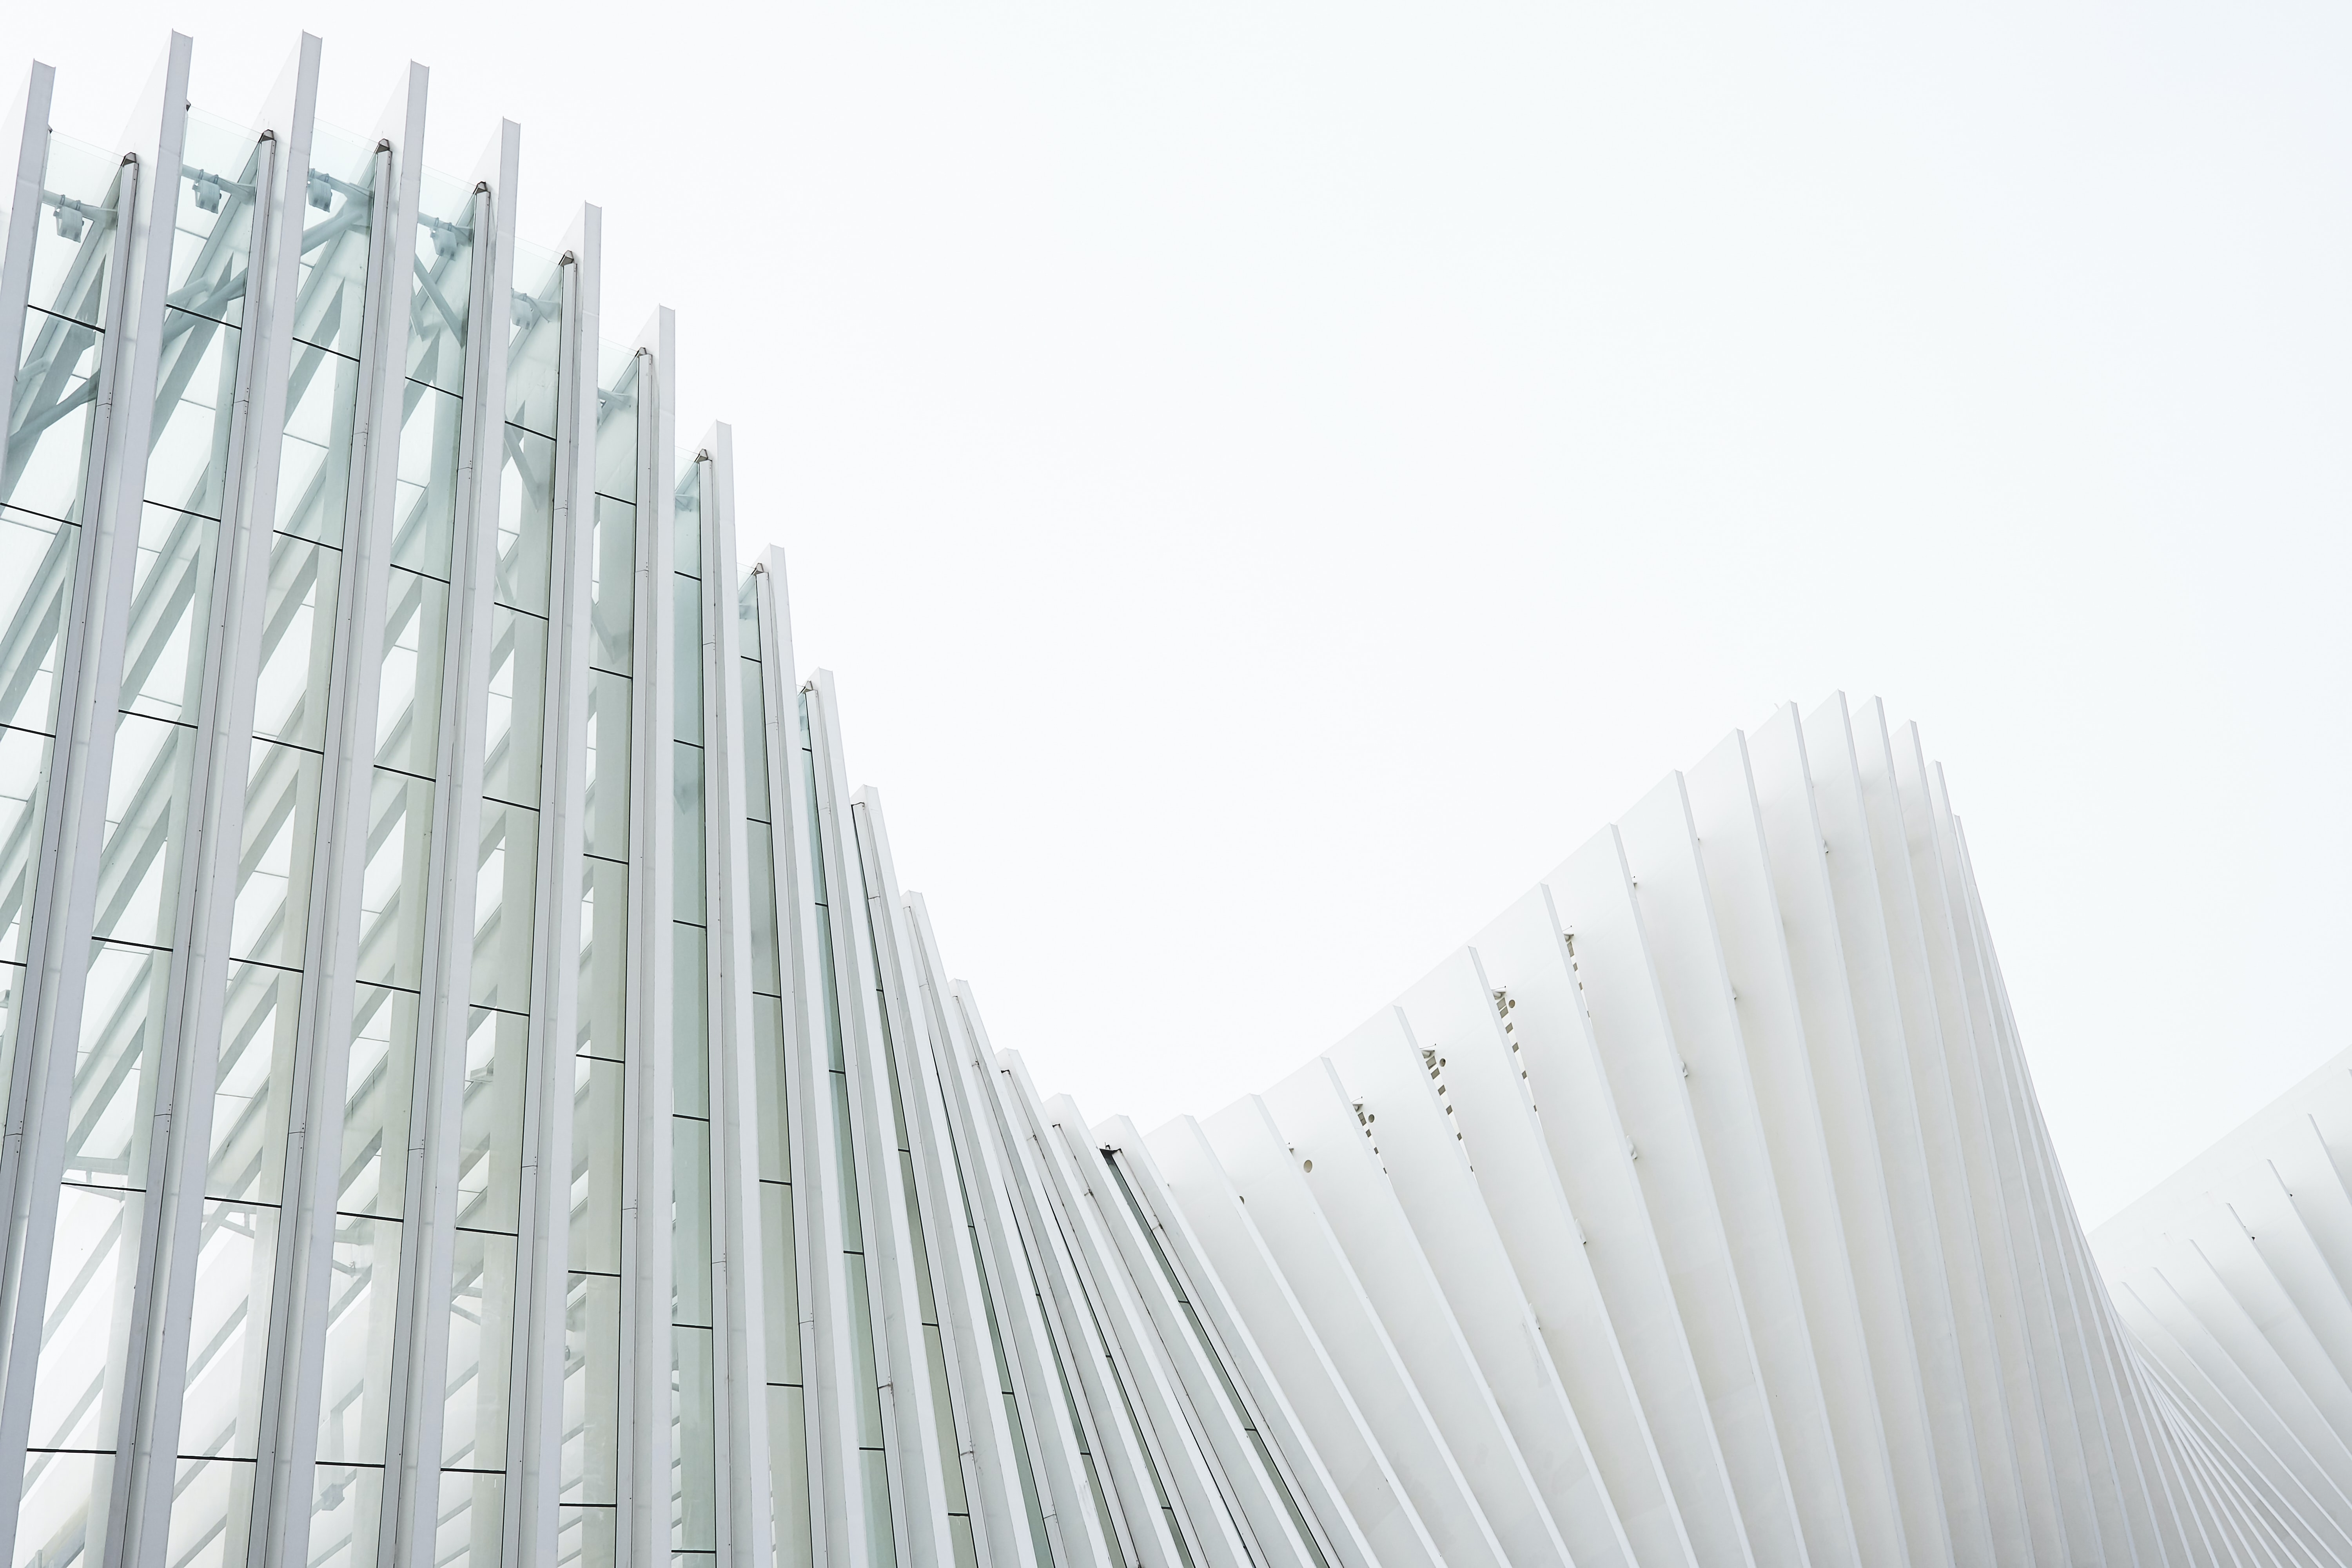 White concrete ribs in the undulating glass facade of a modern building